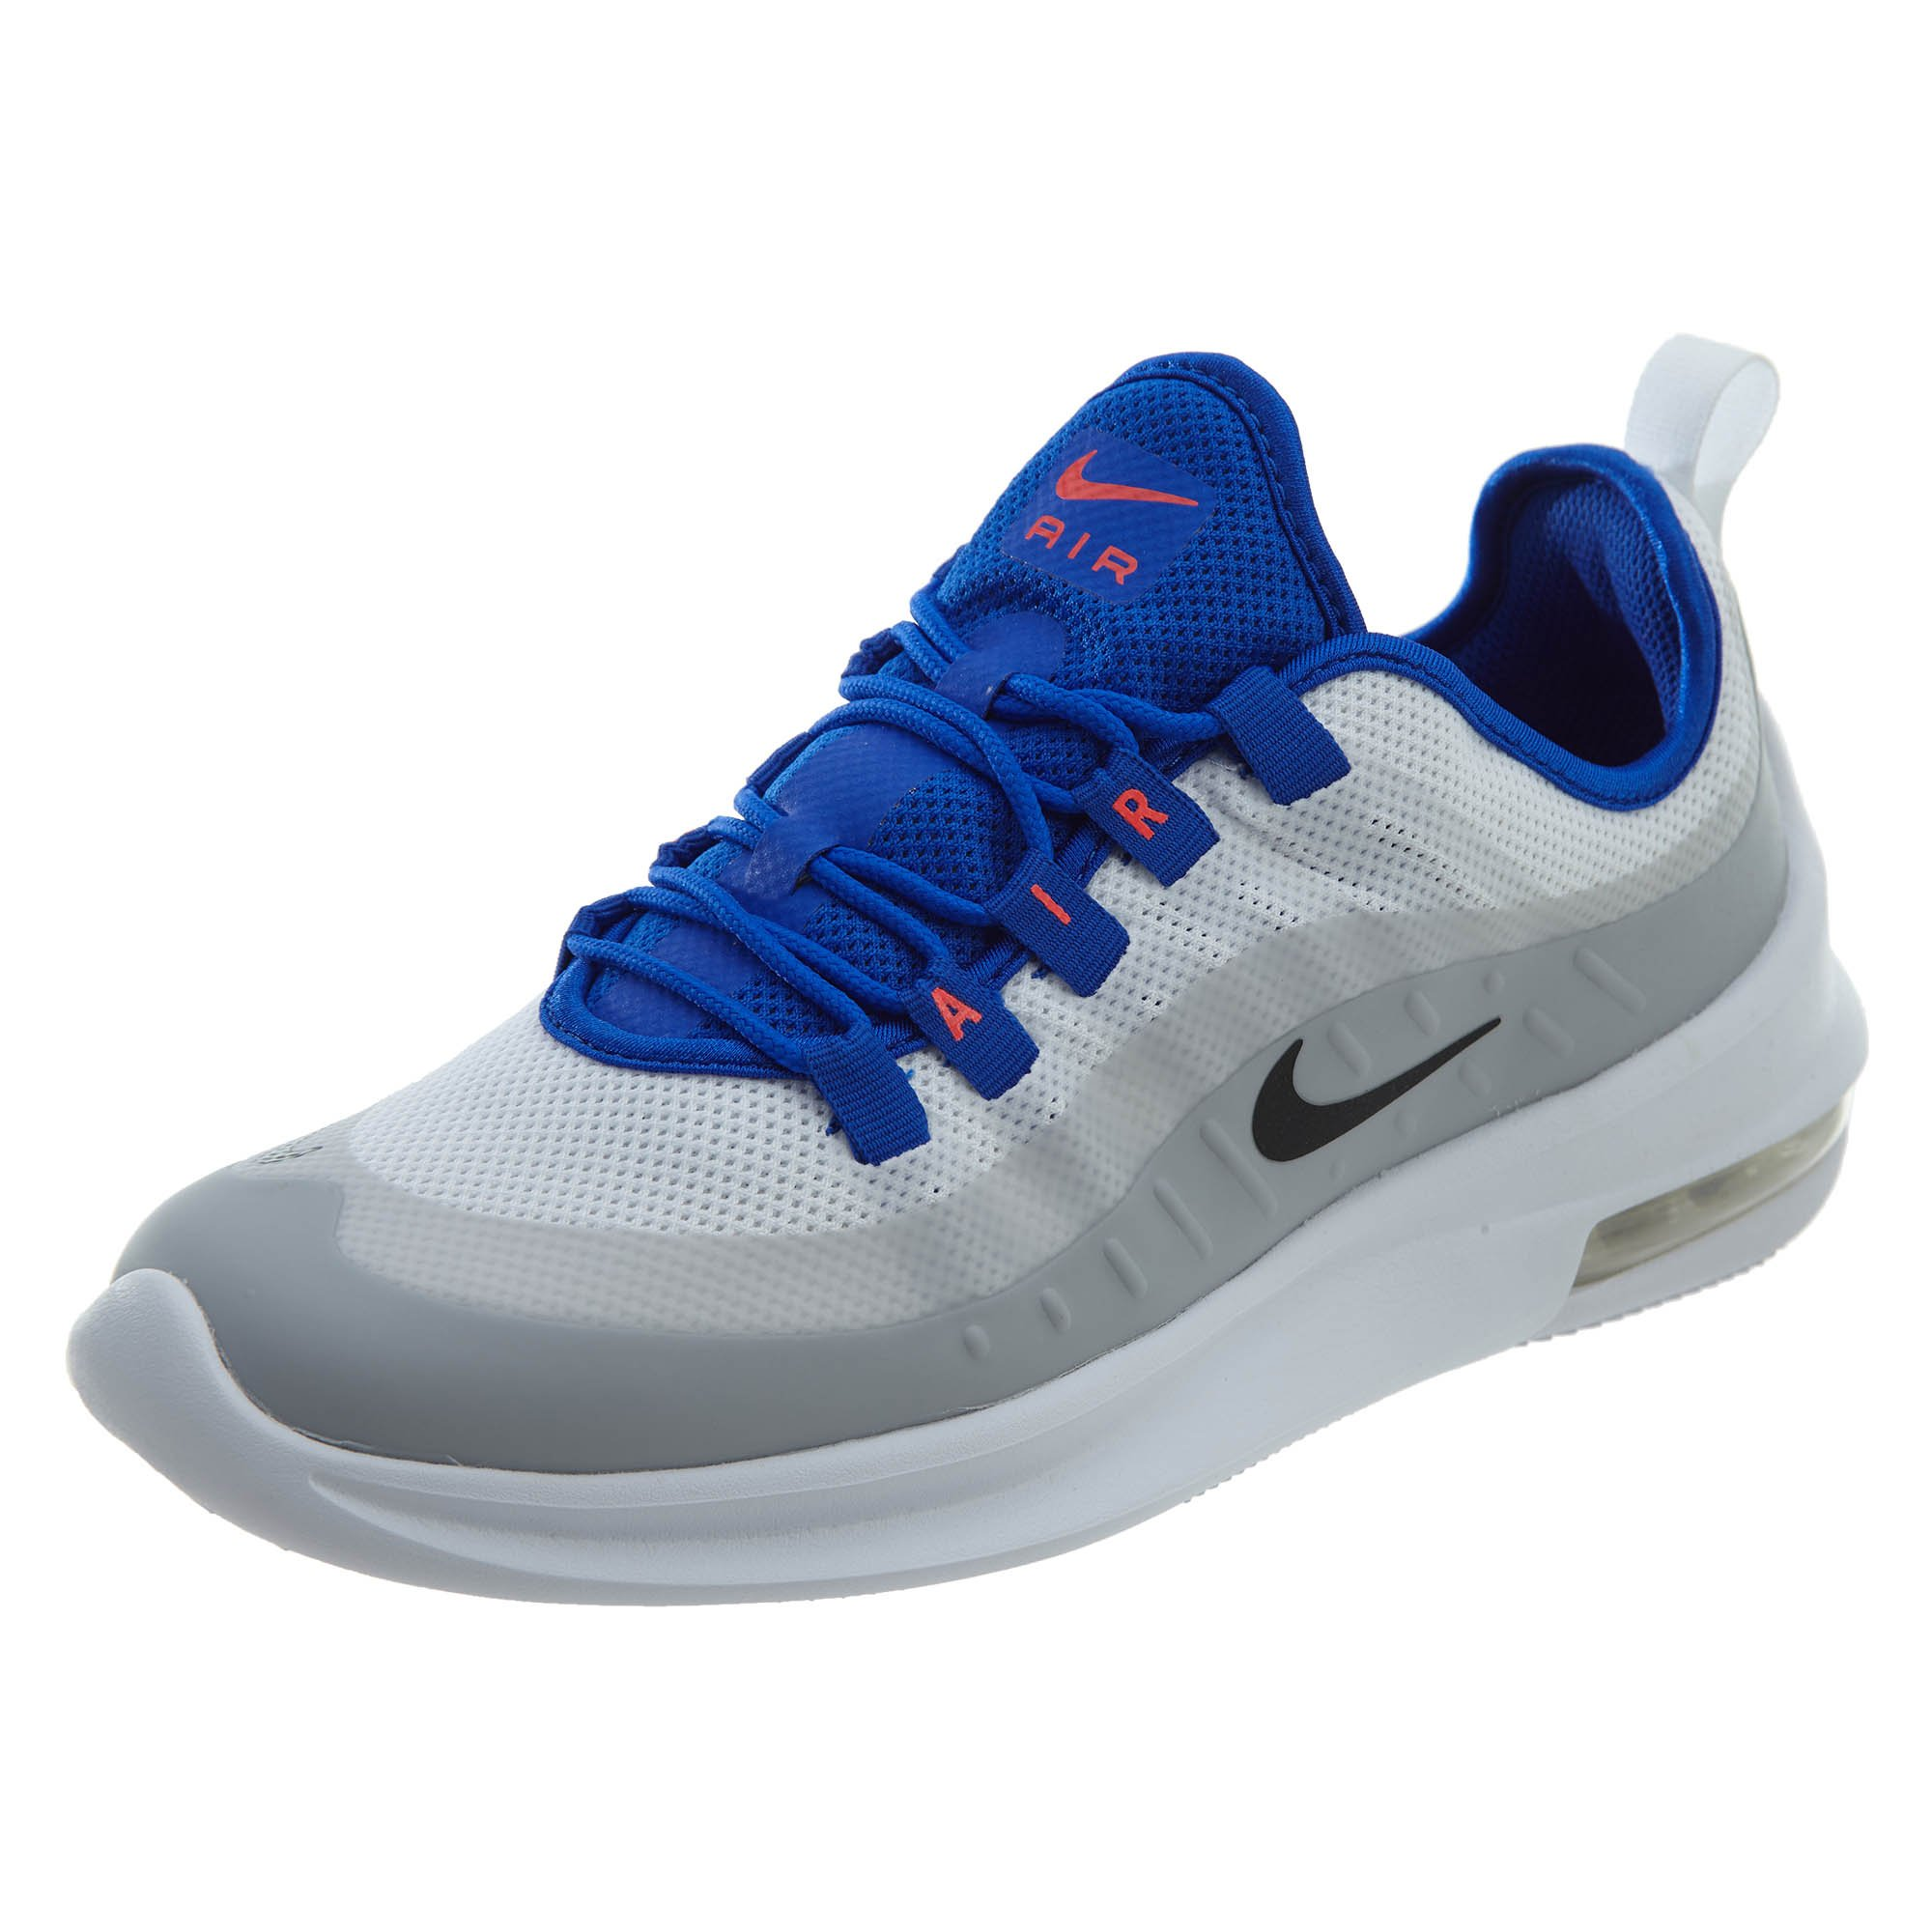 3af06334a845 Galleon - NIKE Womens Air Max Axis Running Shoes AA2168 101 (6 B(M) US)